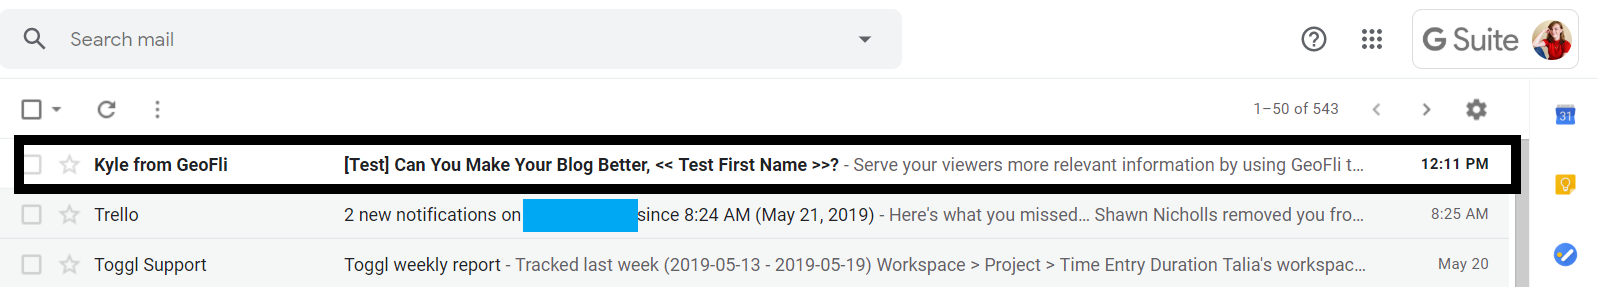 Screenshot of Gmail account with personalized email subject line featuring first name